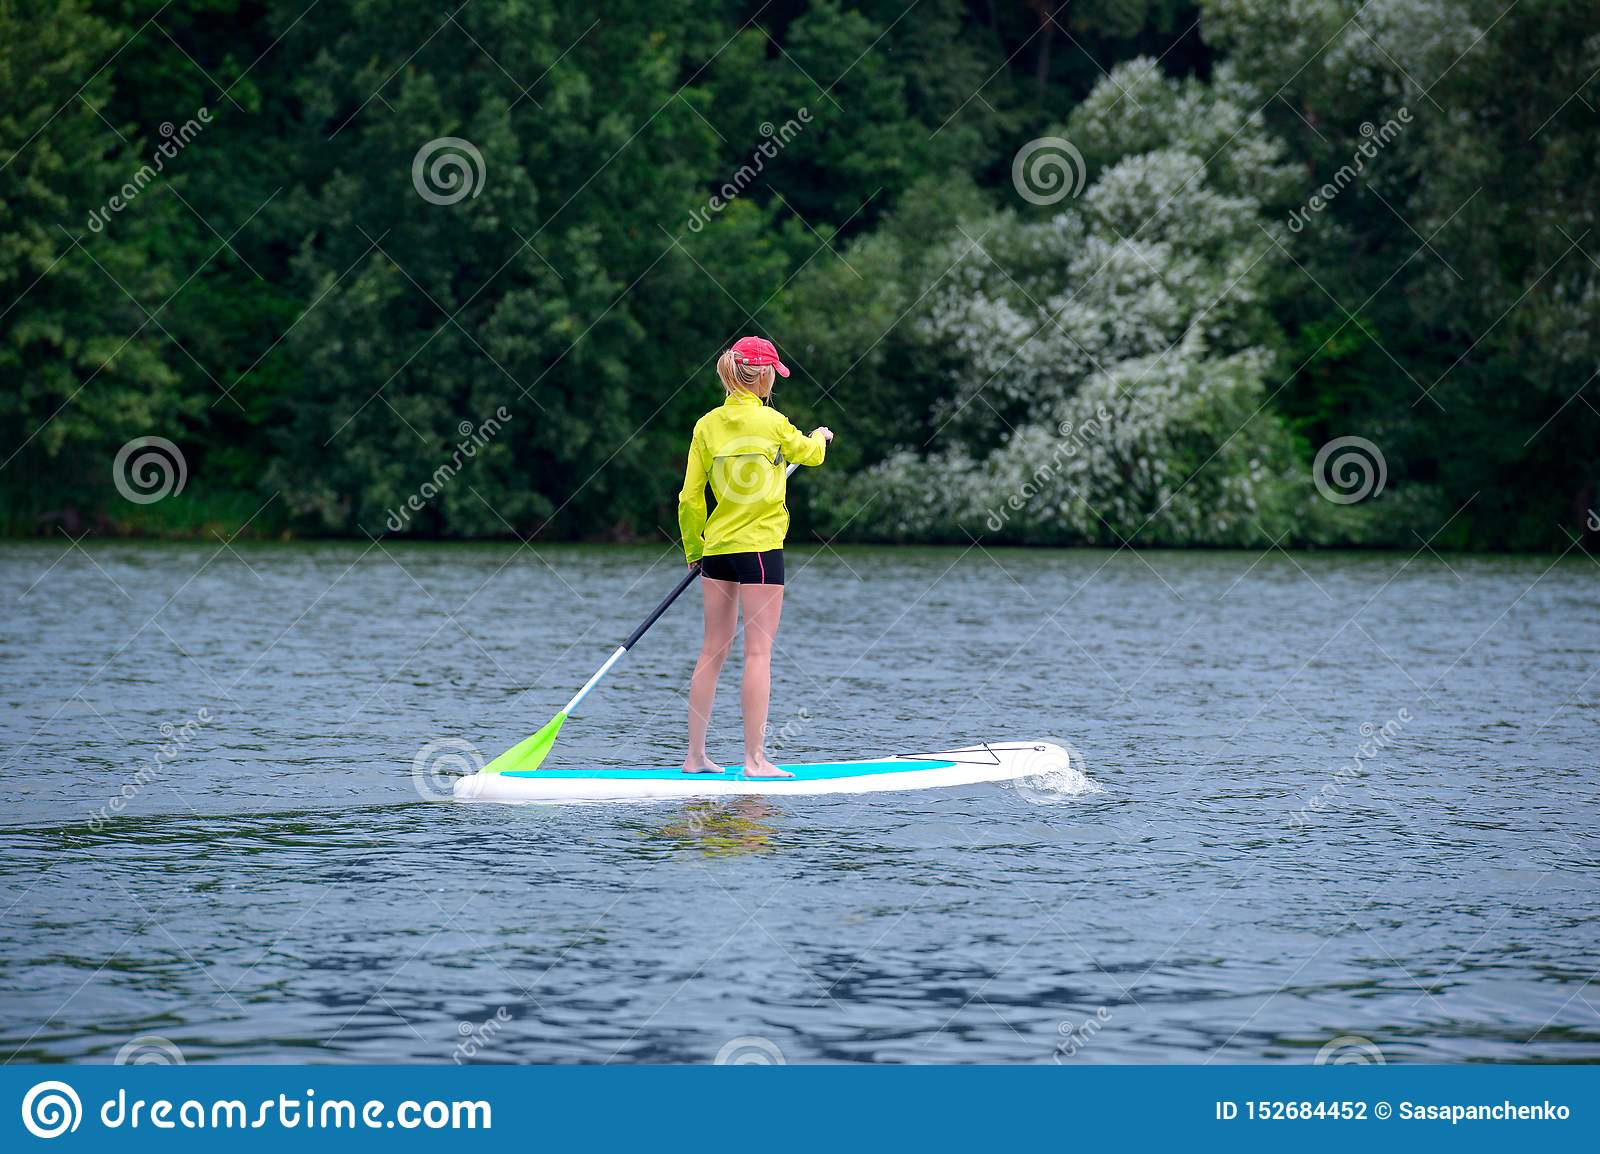 A young woman floats on a SUP board along a large river. Swim on the board for amazing outdoor activities